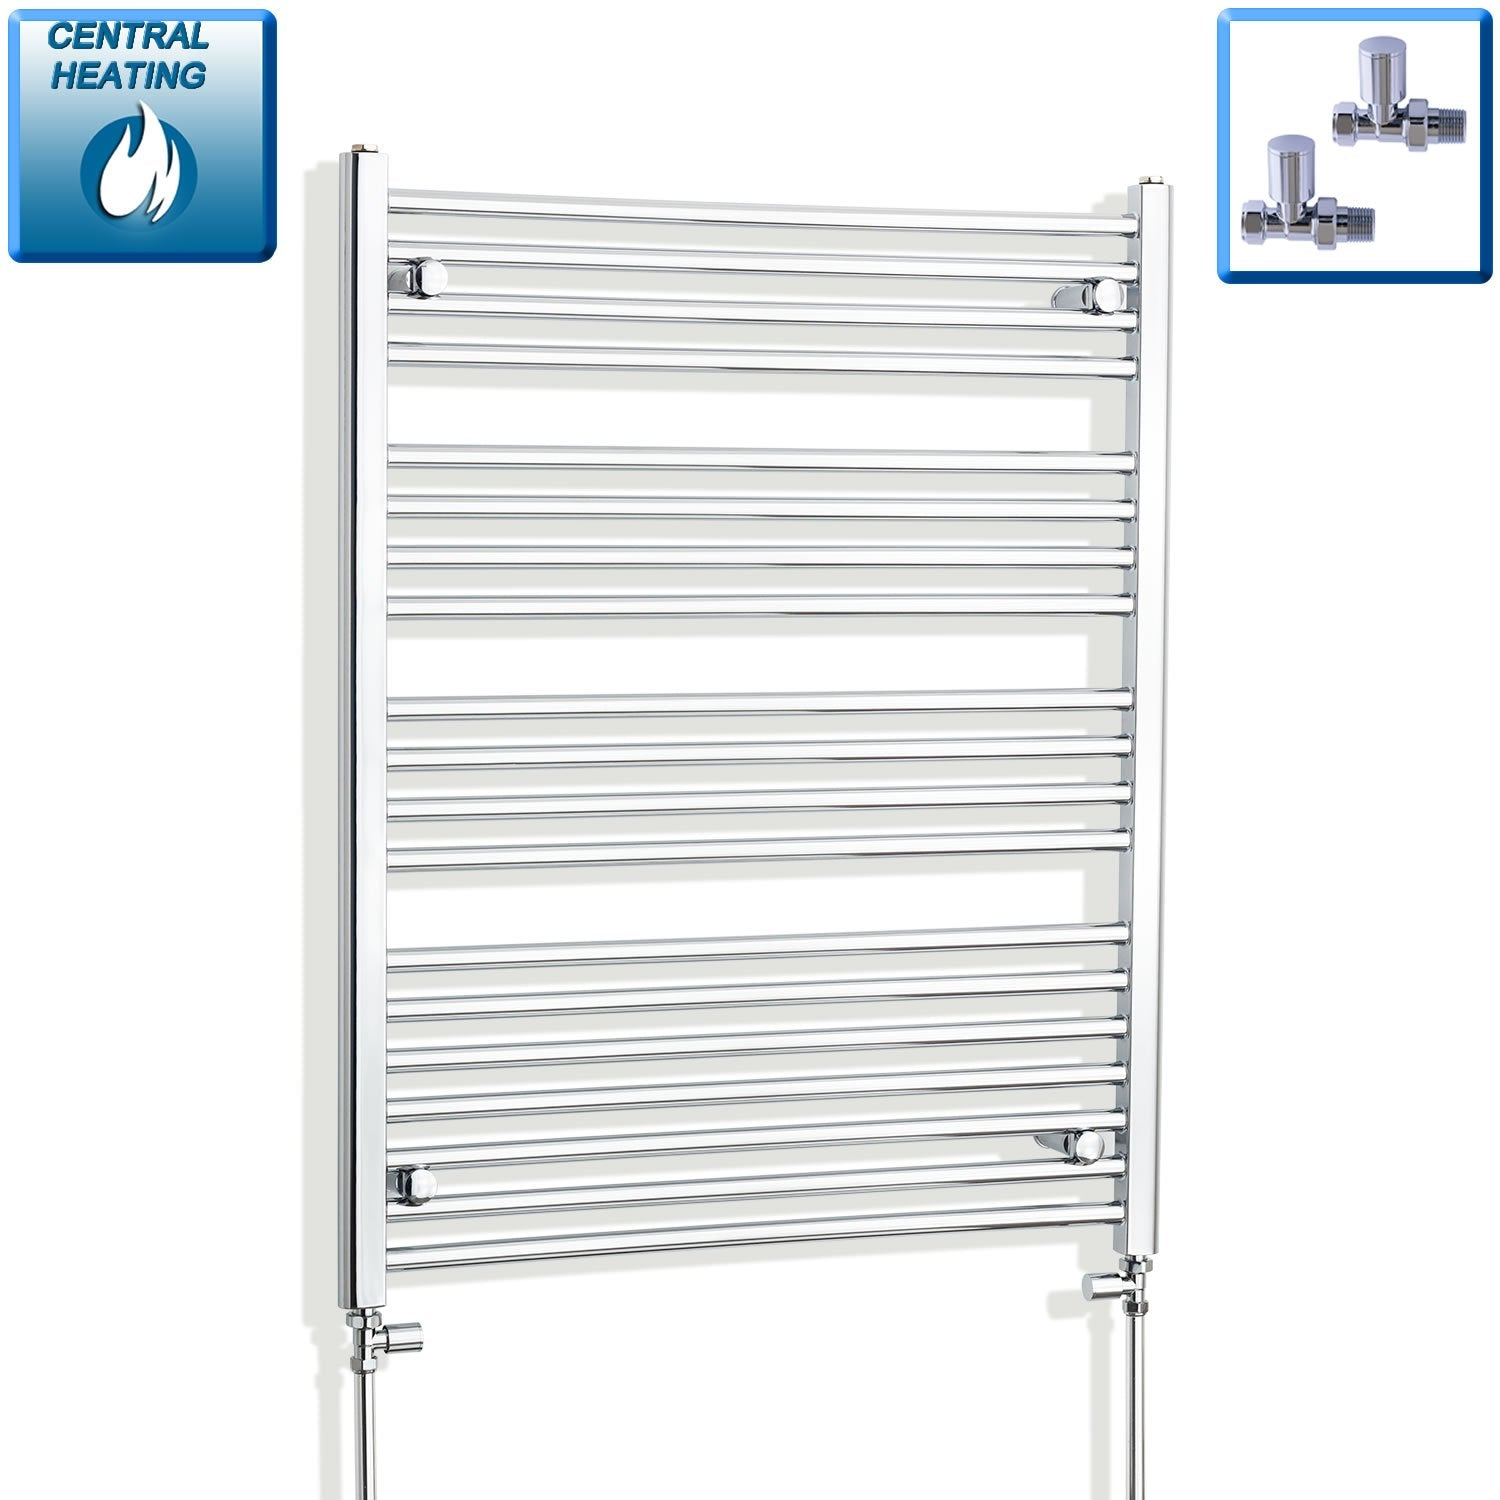 750mm Wide 1000mm High Curved Chrome Heated Towel Rail Radiator HTR,With Straight Valve